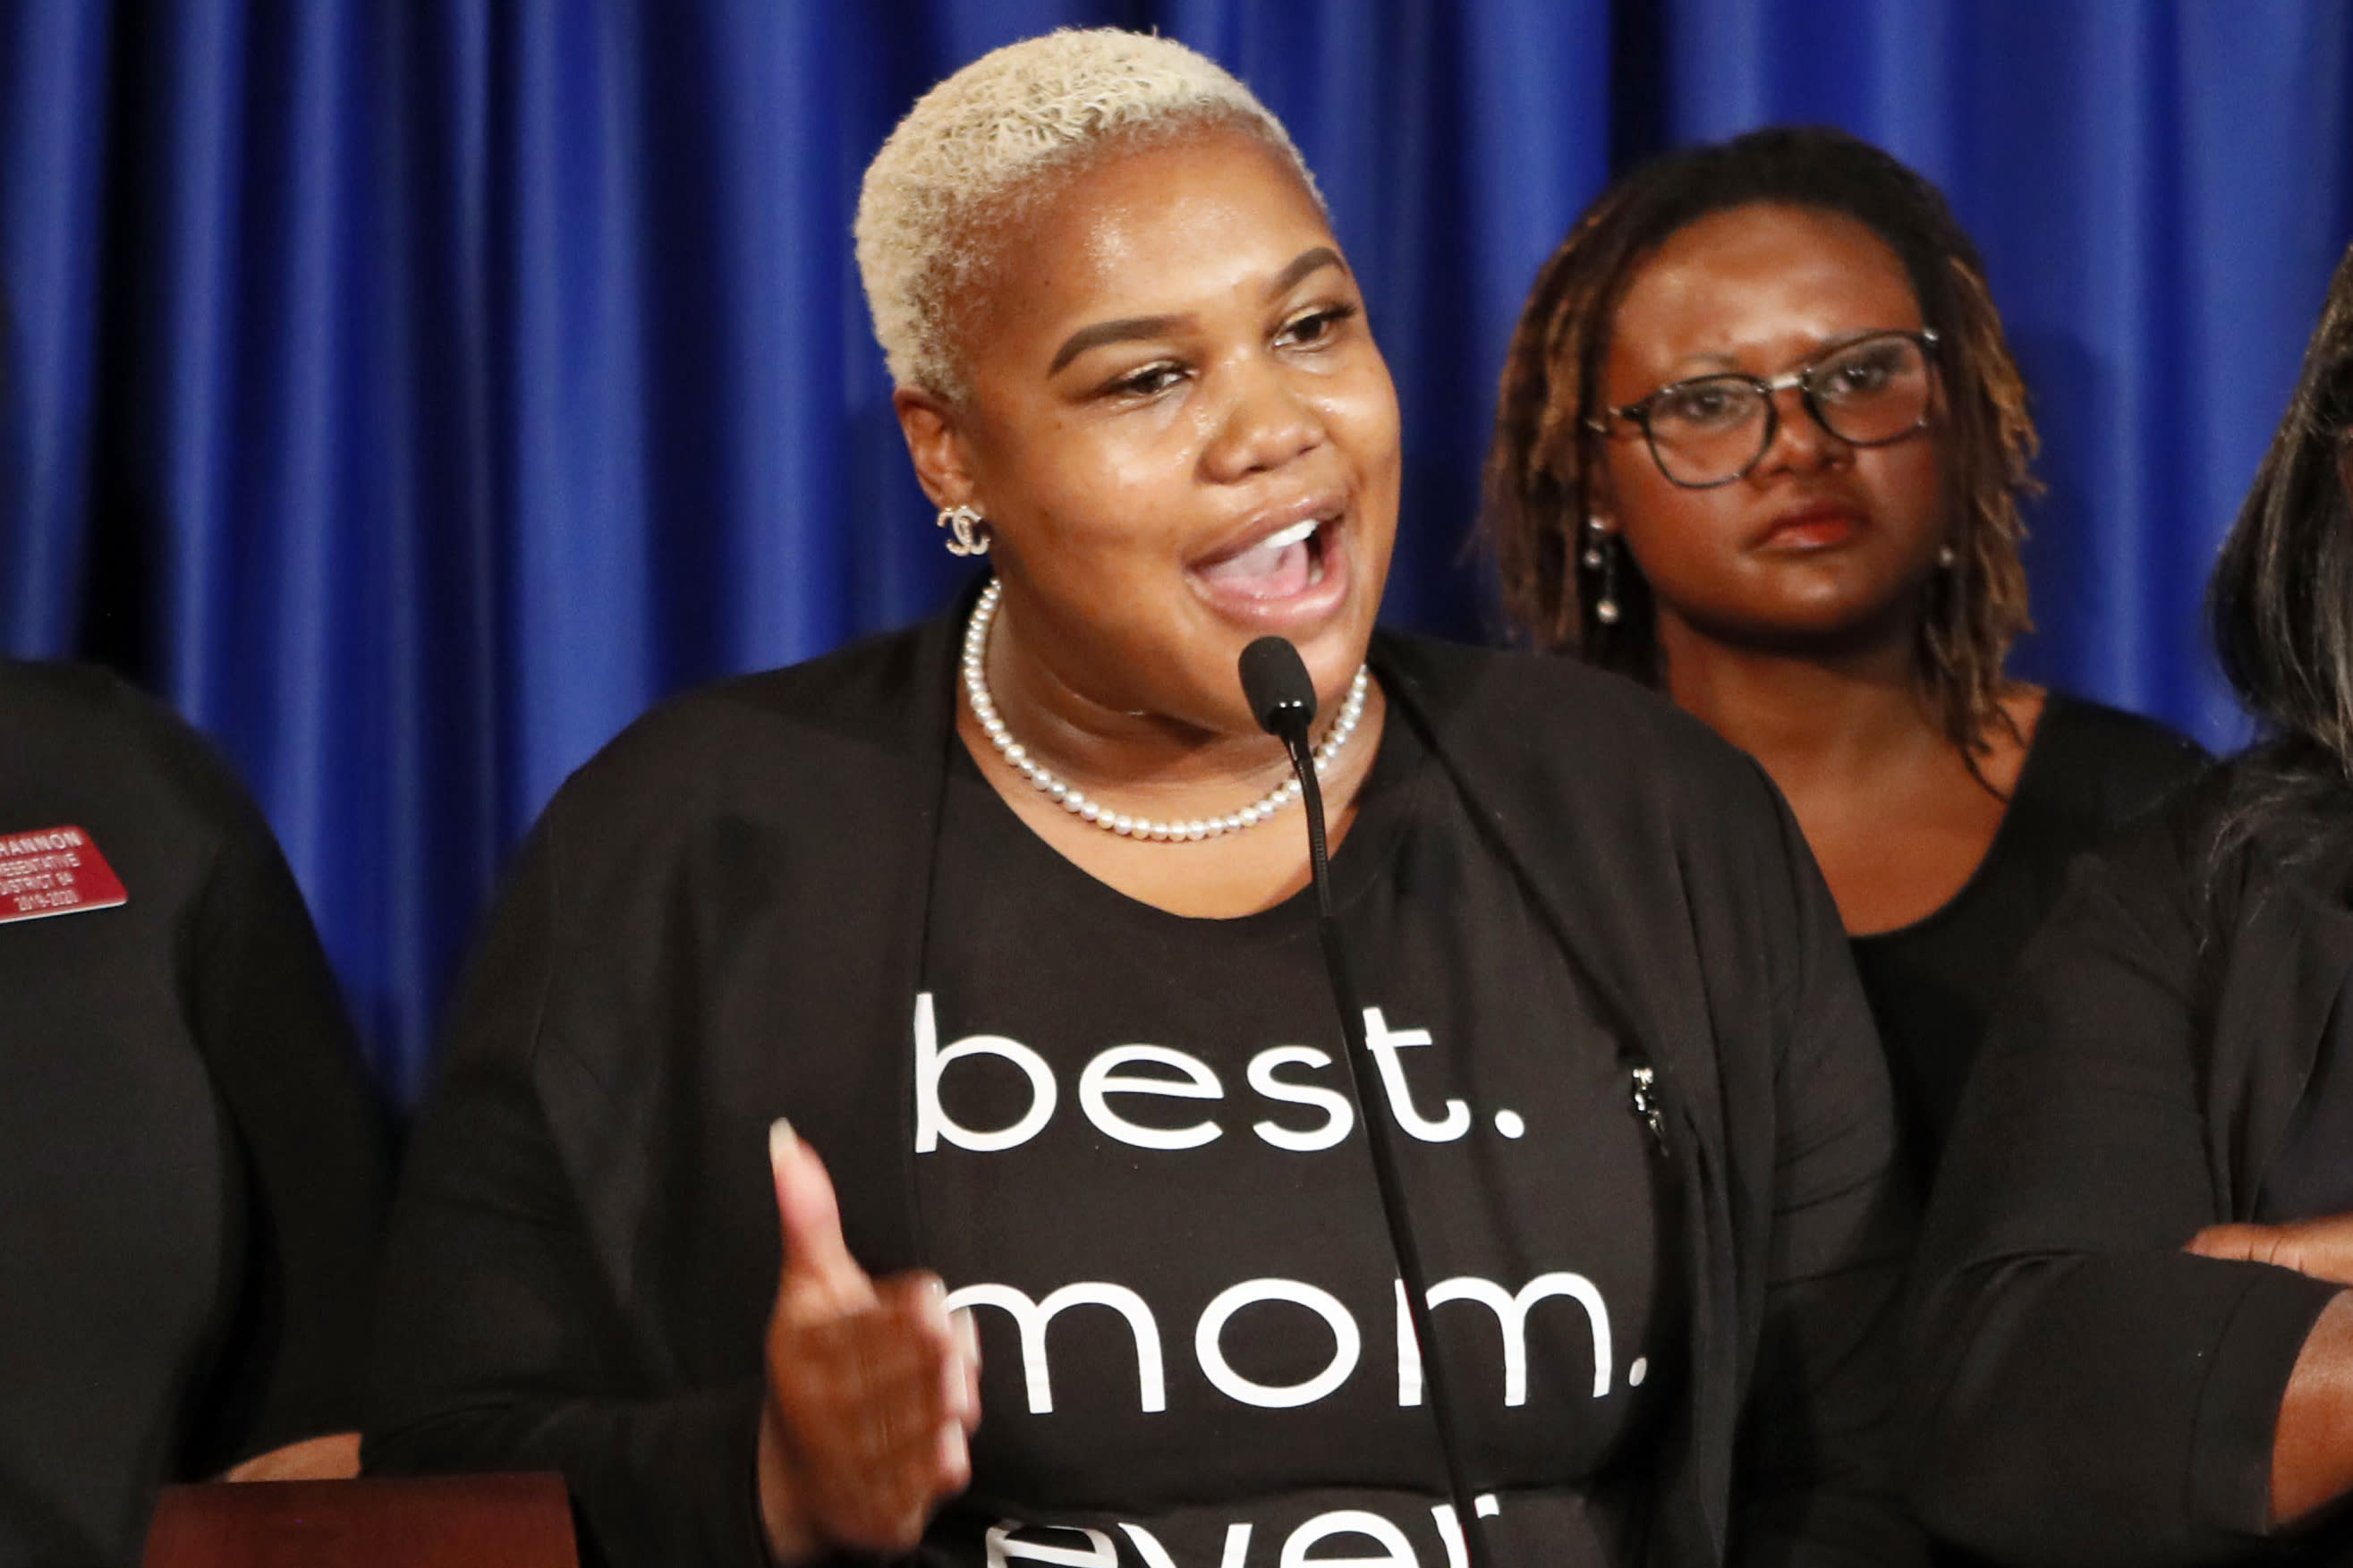 Black Politician Says She was Told 'Go Back Where You Came From'